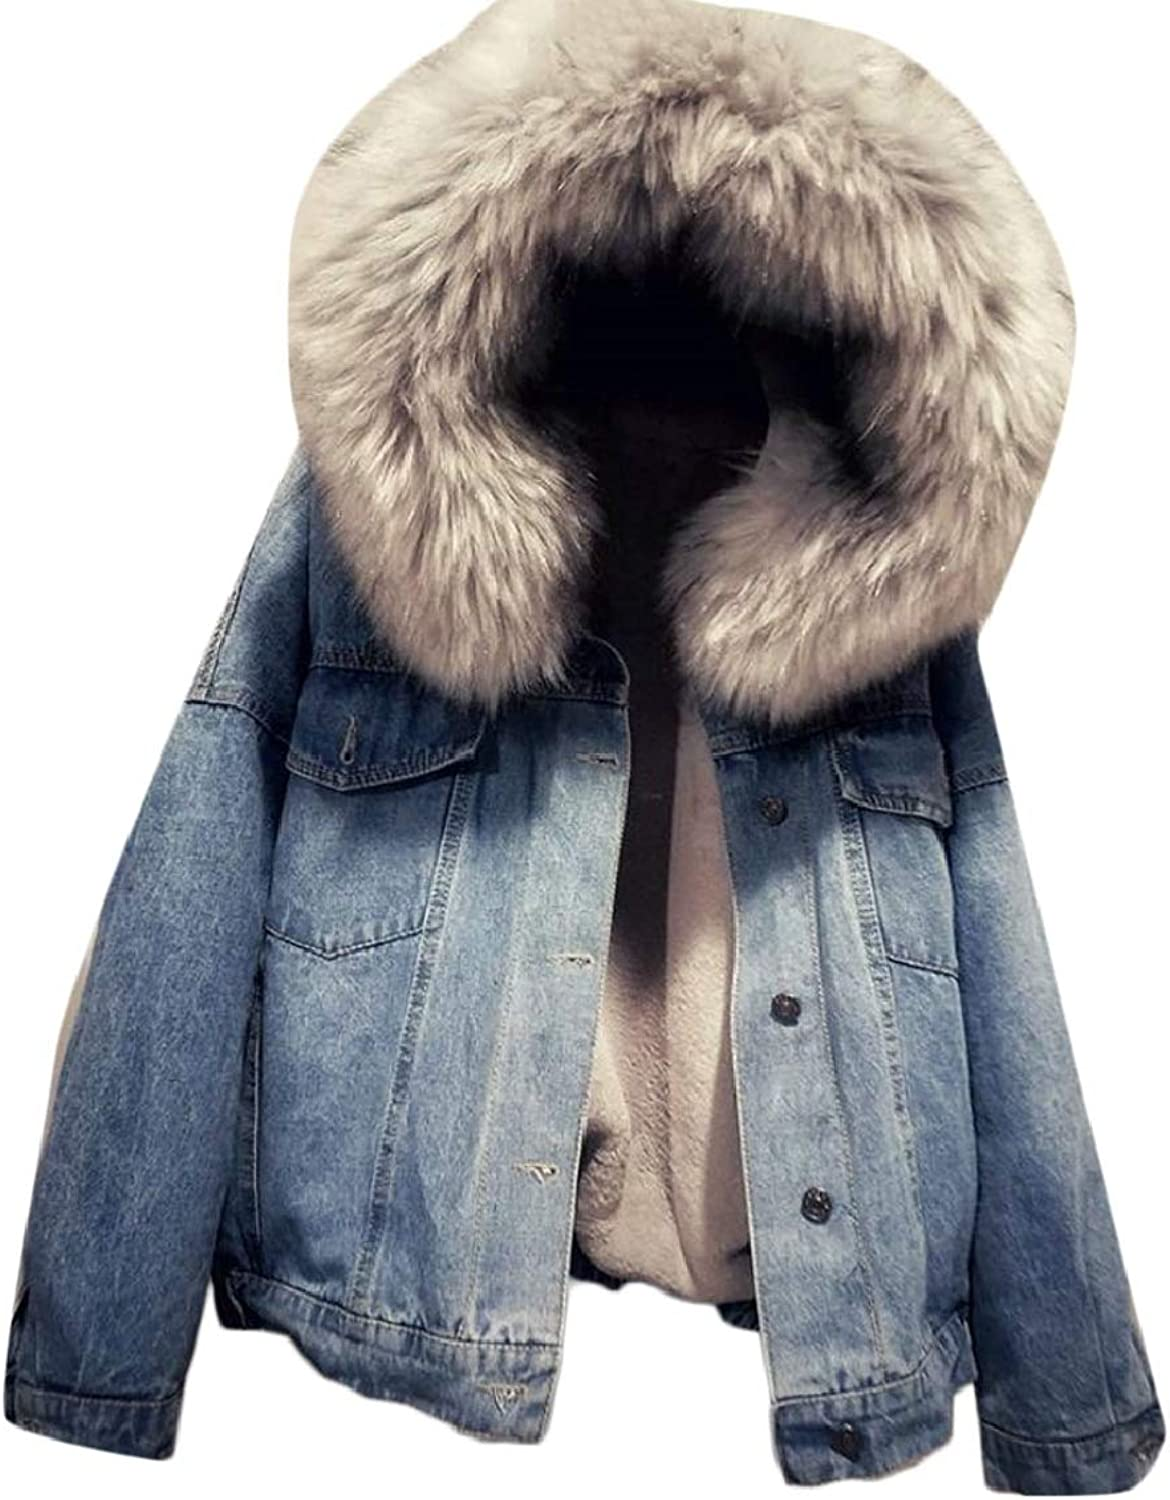 Jxfd Women's Winter Hooded Fur Collar Thick Denim Jacket Outerwear Coat